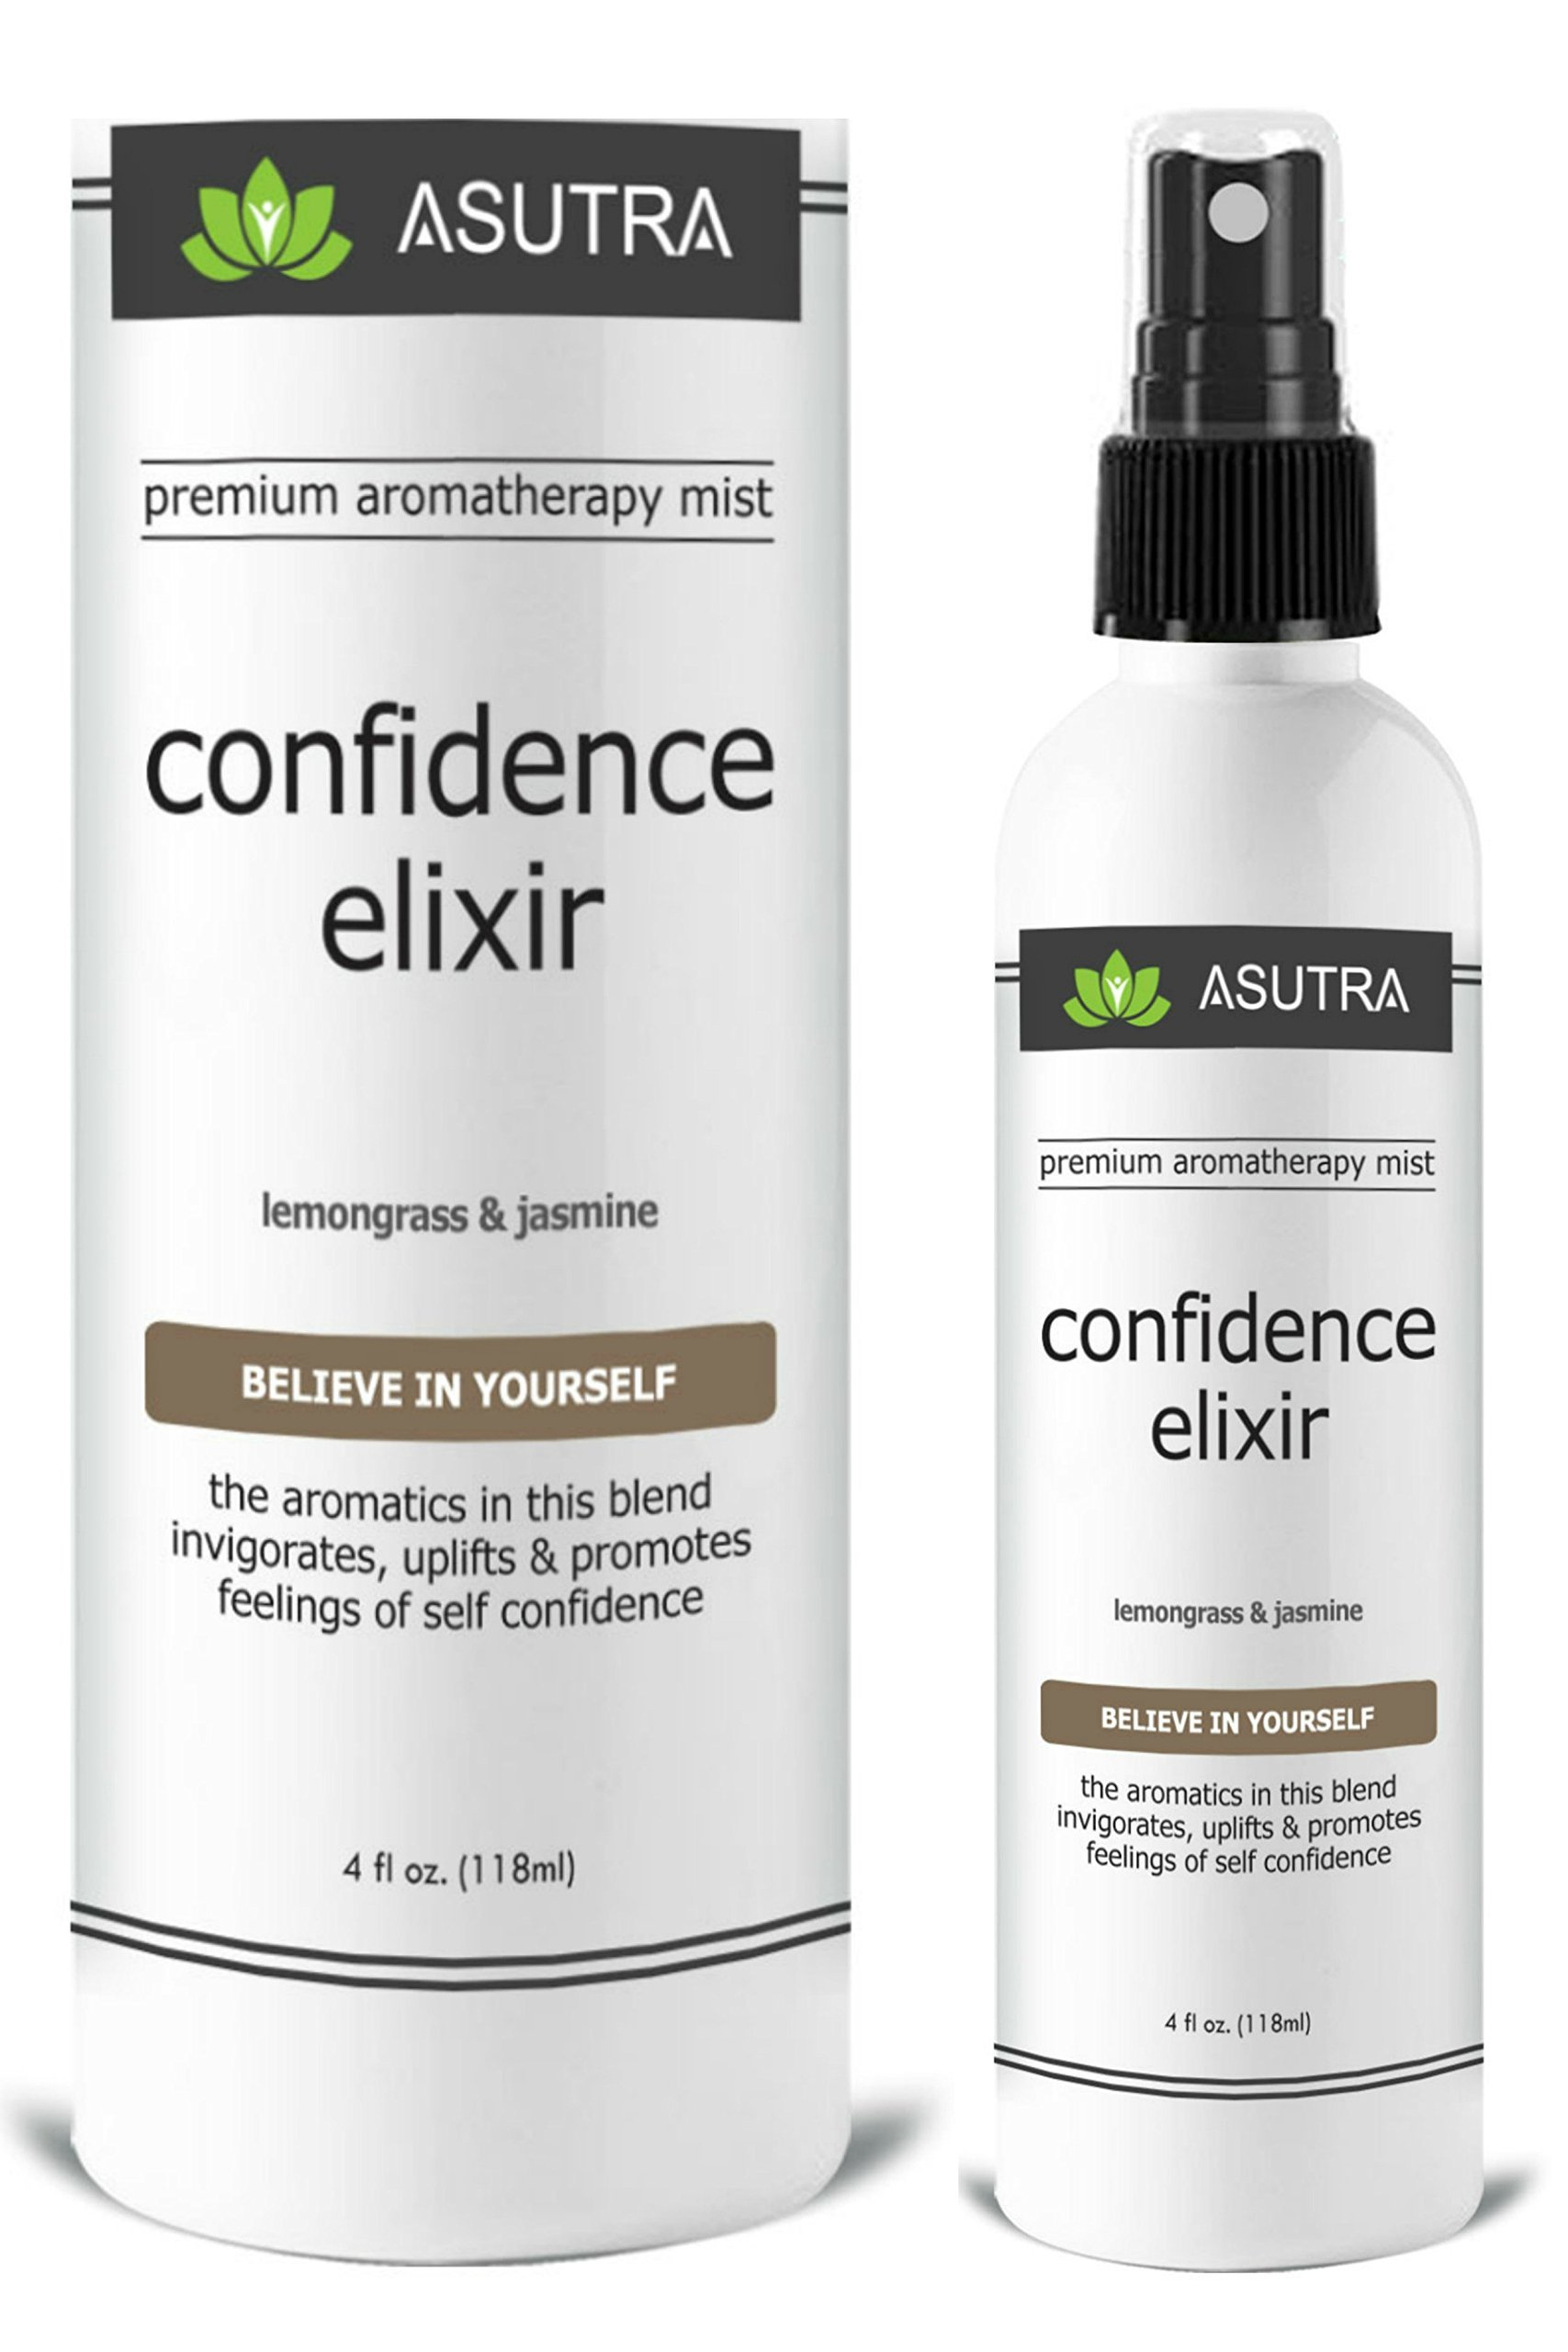 ASUTRA Premium Aromatherapy Mist -''CONFIDENCE ELIXIR'' - Believe In Yourself - 100% ALL NATURAL & ORGANIC Room & Body Mist, Essential Oil Blend - Lemongrass & Jasmine - 100% GUARANTEED